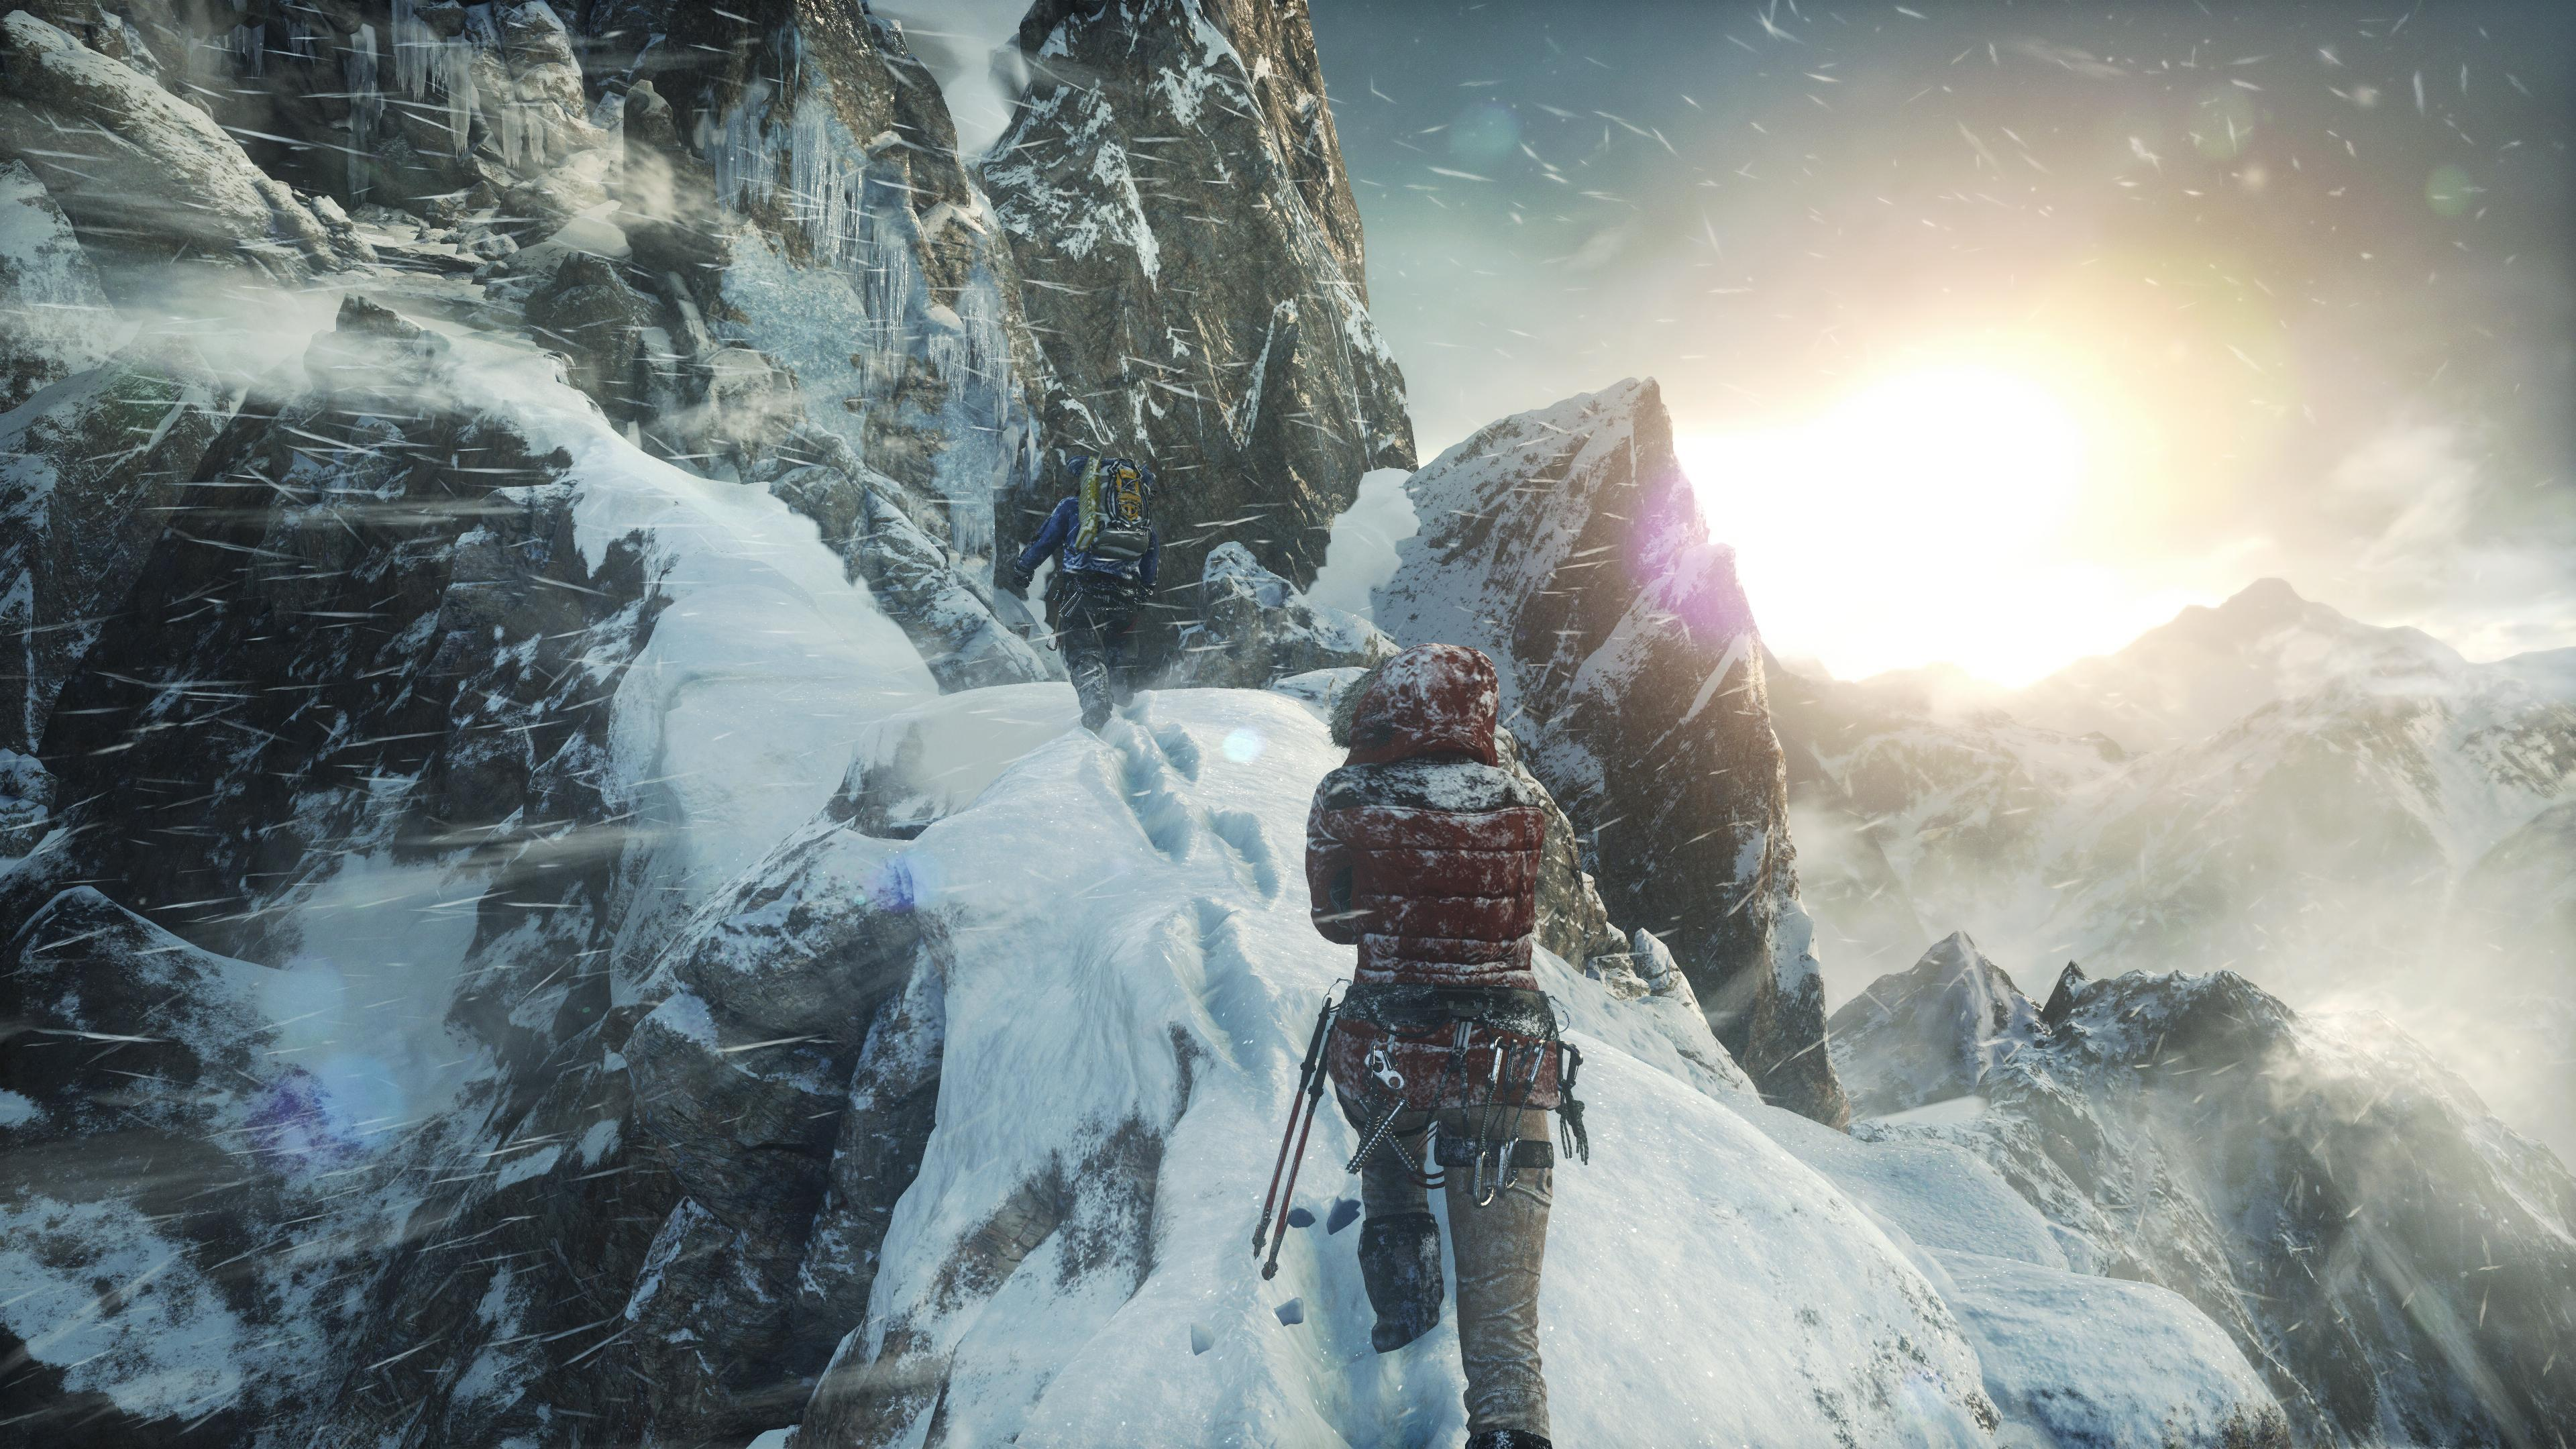 Rise of the tomb raider was released on steam with trading card support on 28 january 2016. Rise of The Tomb Raider PC Performance Analyzed - NVIDIA and AMD Cards Tested With Pure Hair and ...